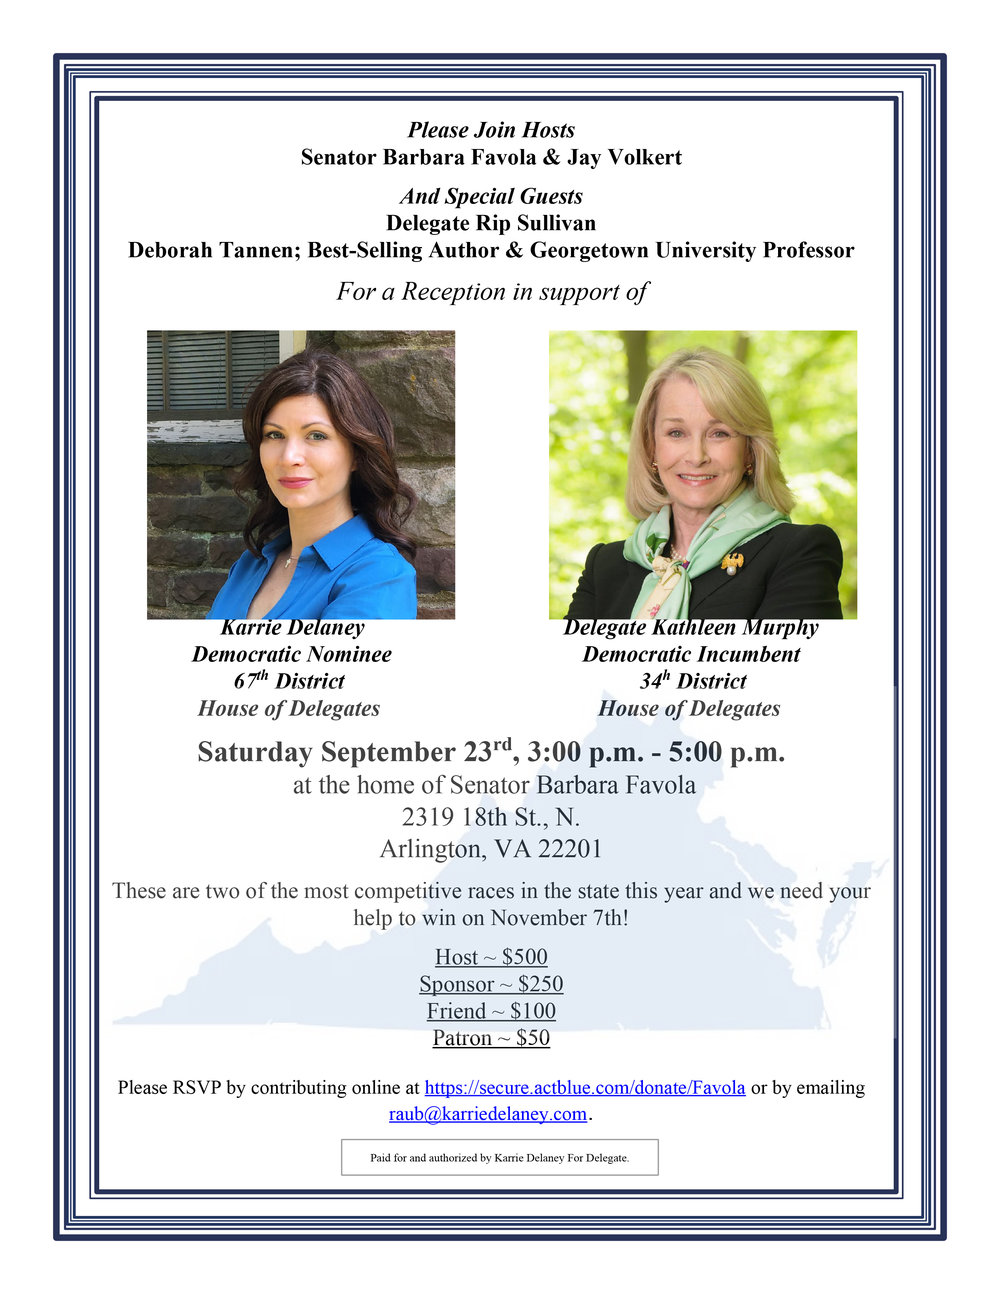 9.23 Invitation To Support Karrie Delaney & Delegate Kathleen Murphy (4).jpg